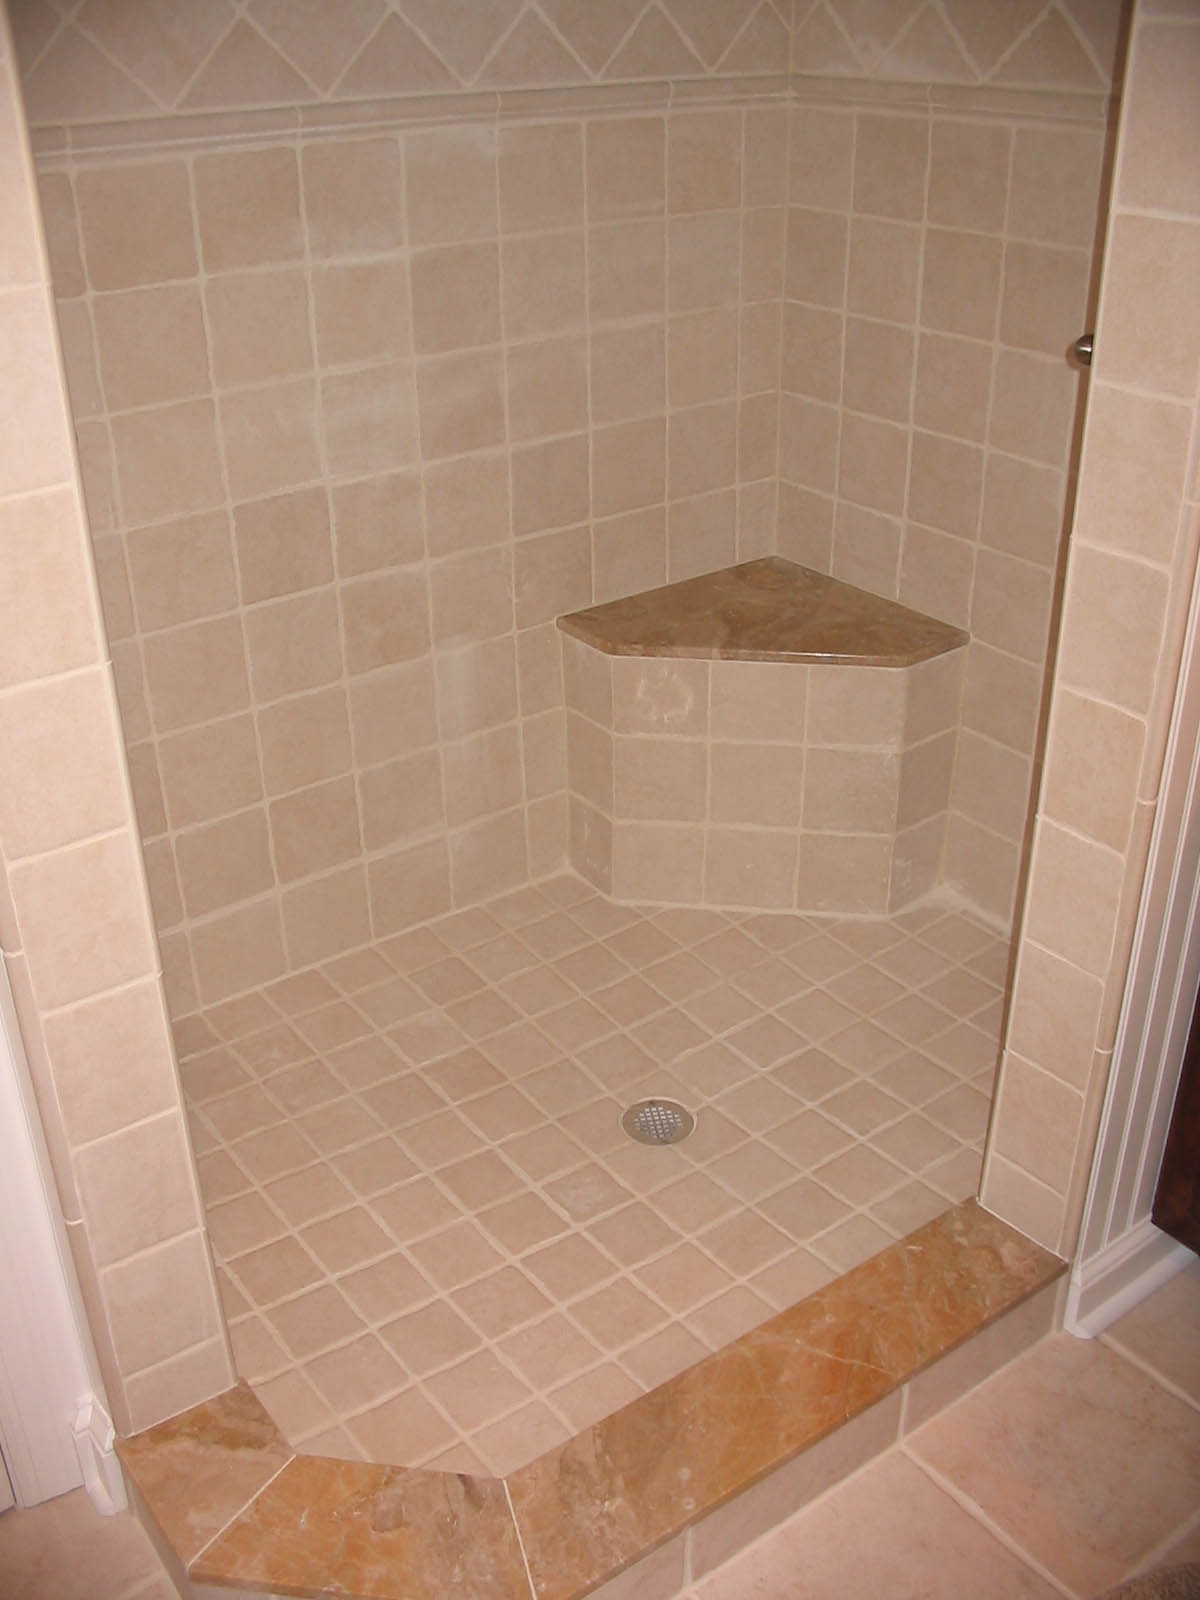 25 wonderful ideas and pictures of decorative bathroom tile borders Tile a shower